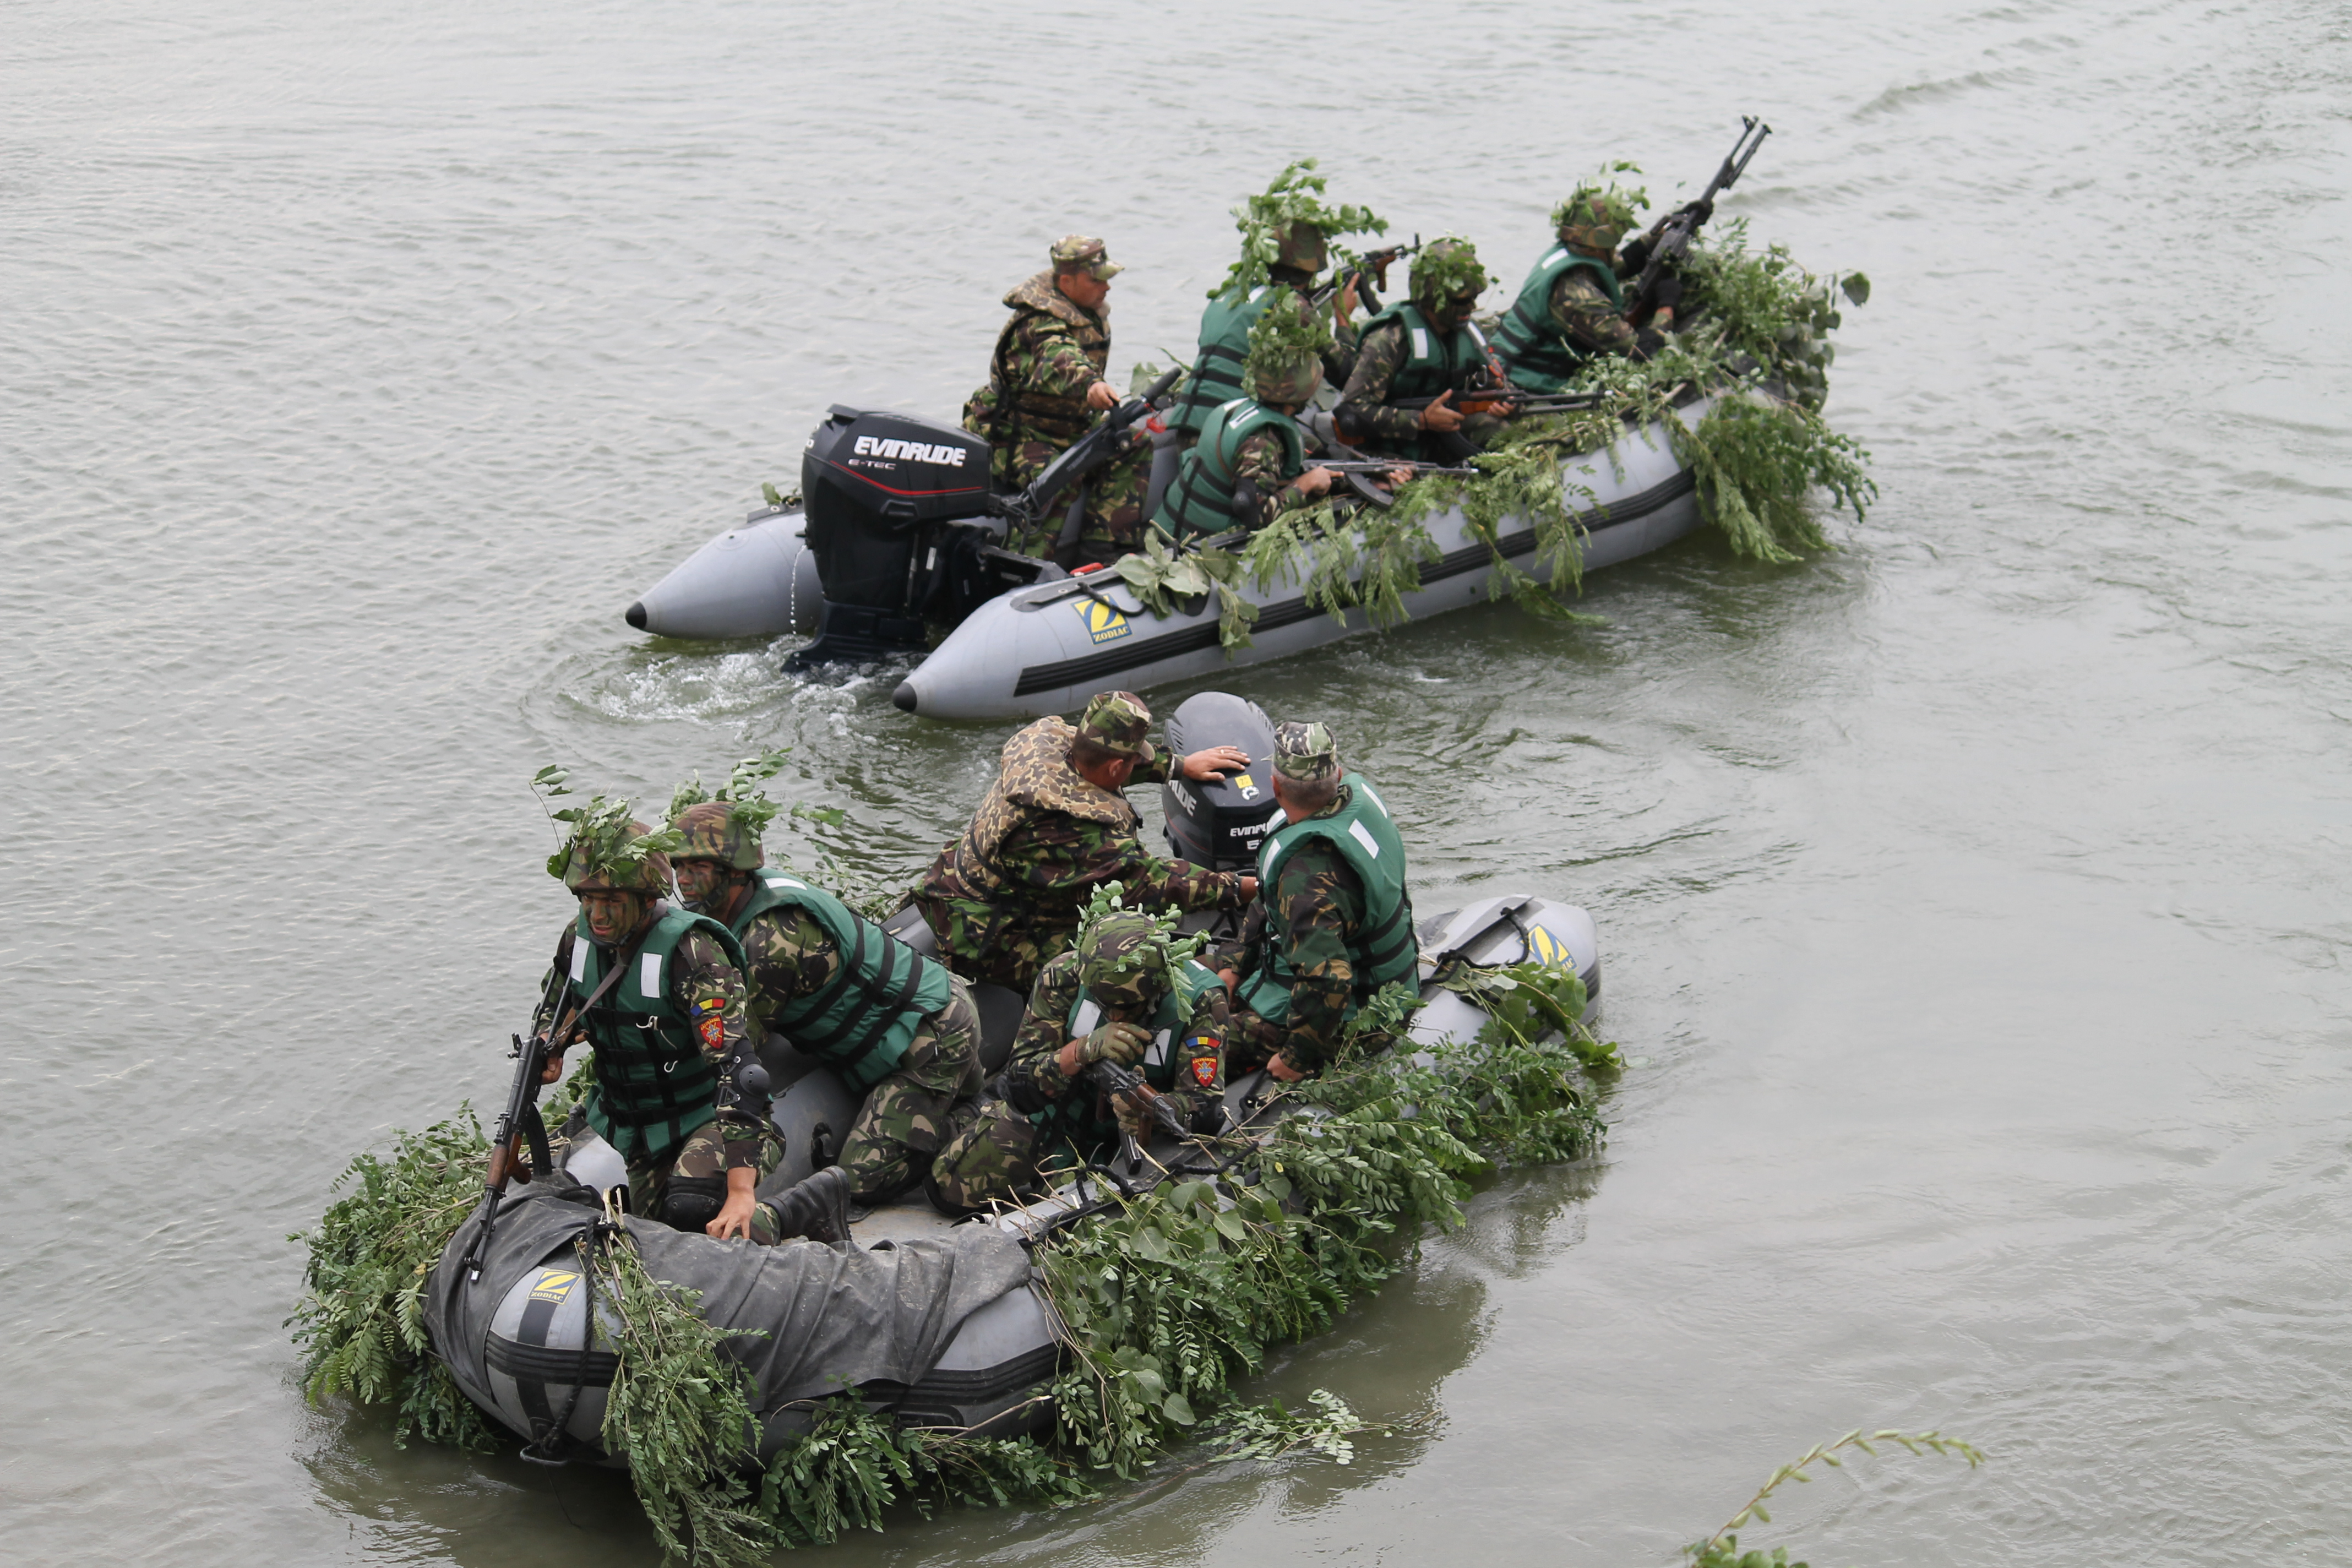 Well-camouflaged Romanian troops load into high-speed rafts within seconds on the side of the Danube and begin the short journey across to support friendly forces on the other shoreline, fending off enemy advances. (Jen Judson/Staff)